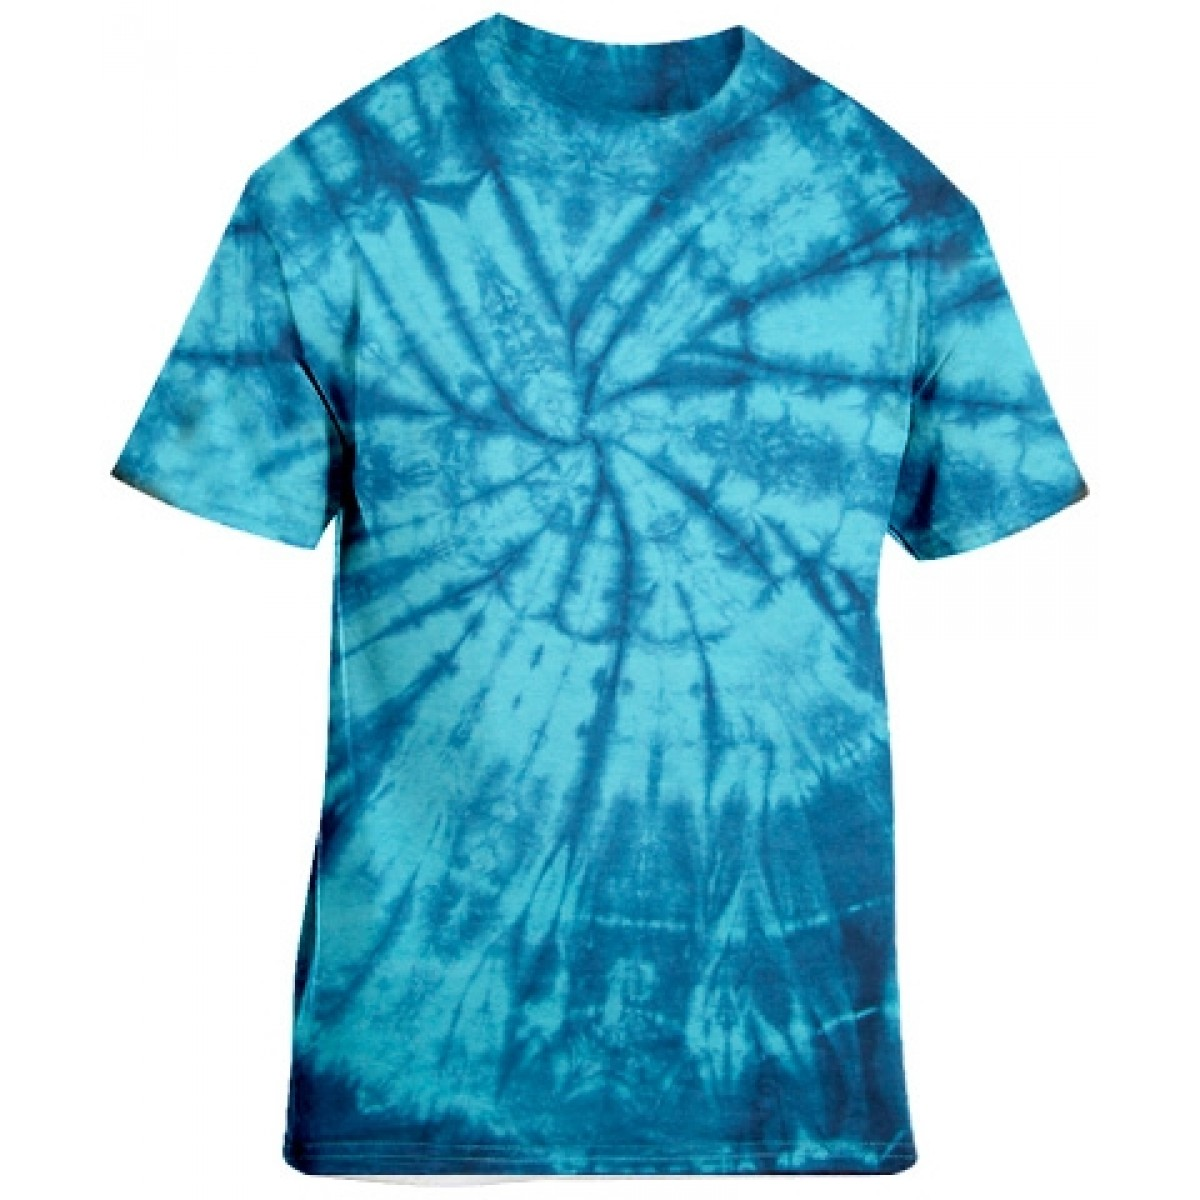 Tie-Dye Blue Short Sleeve-Blue-S